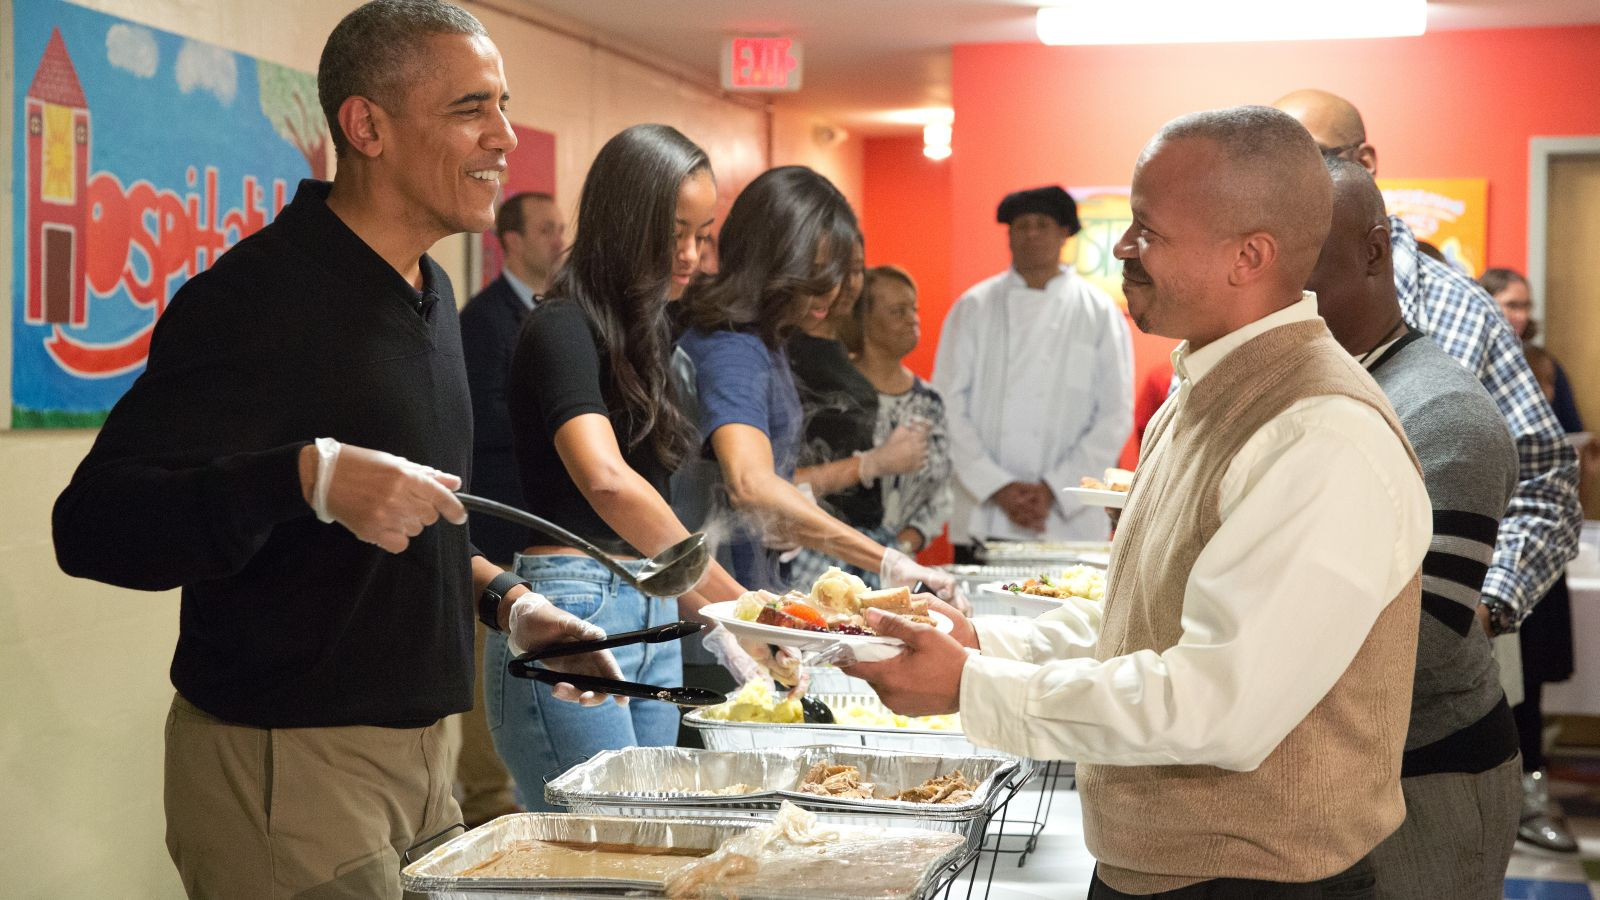 Thanksgiving Dinner In Dc  Here's Why This 2 Year Old of Barack Obama Is Trending